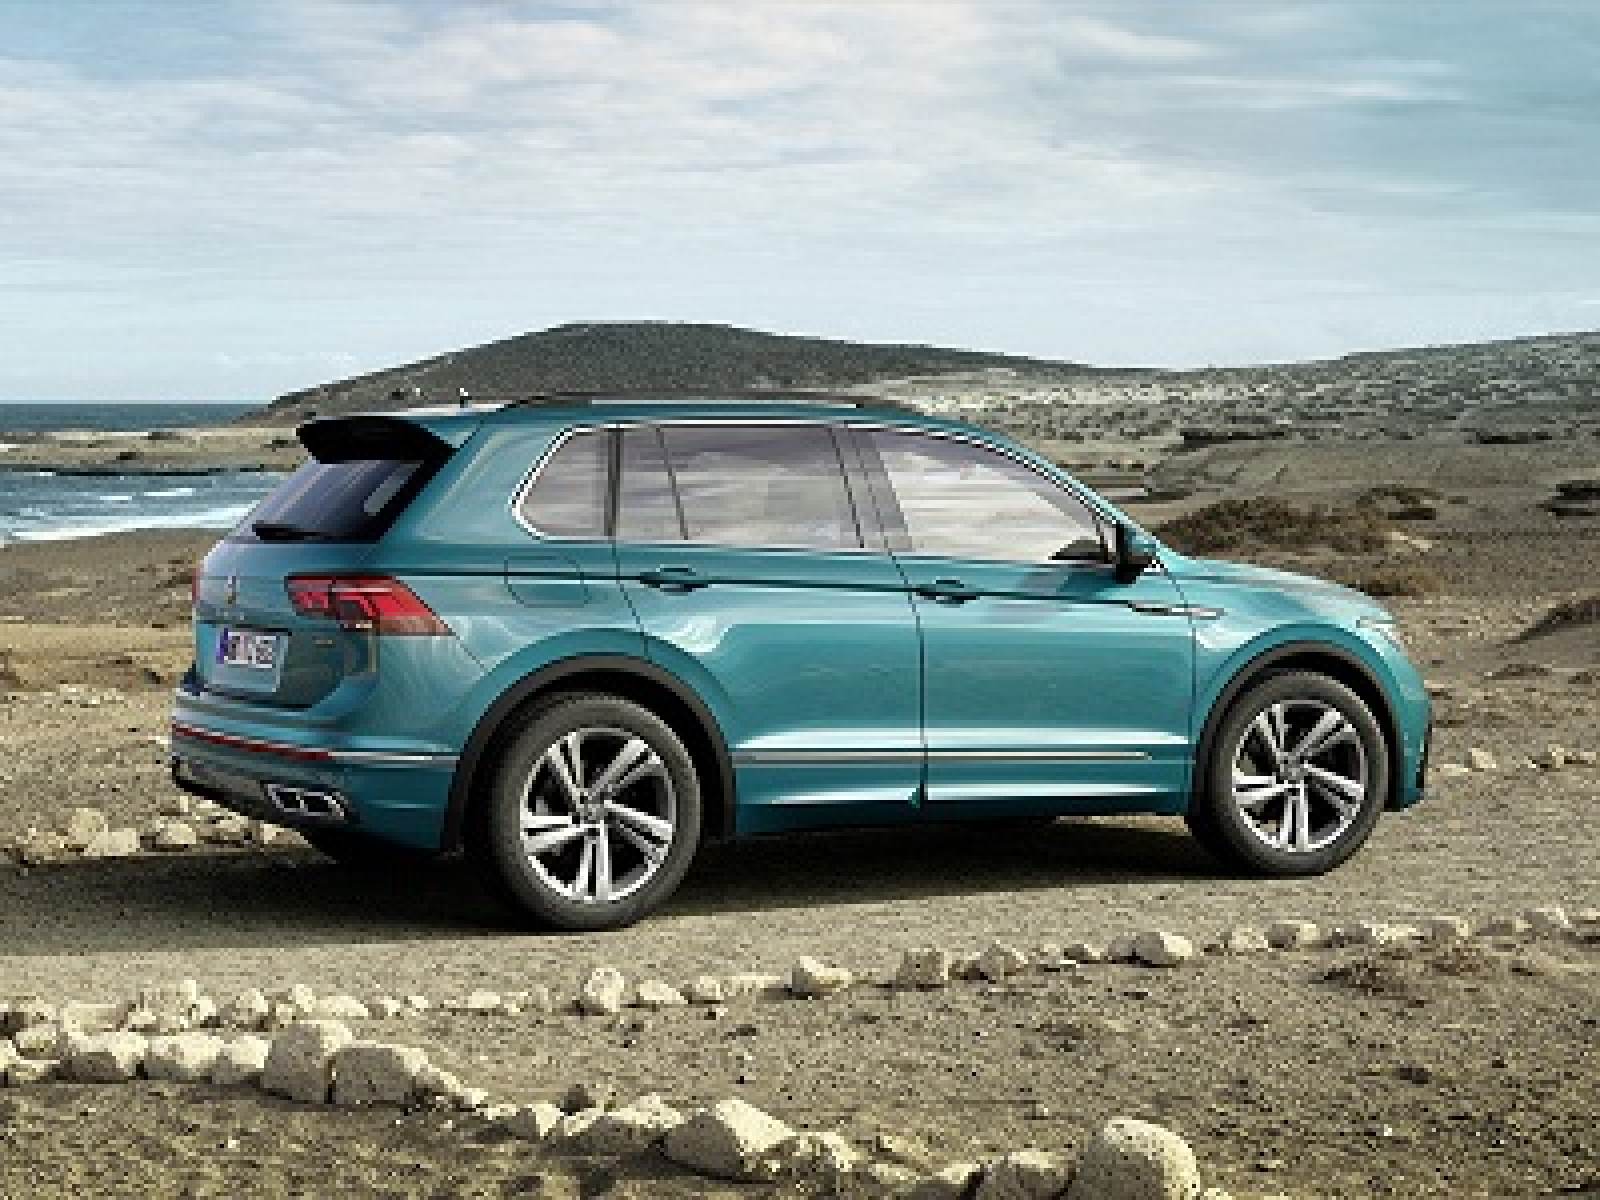 New Tiguan brings latest Volkswagen technology and new eHybrid plug-in